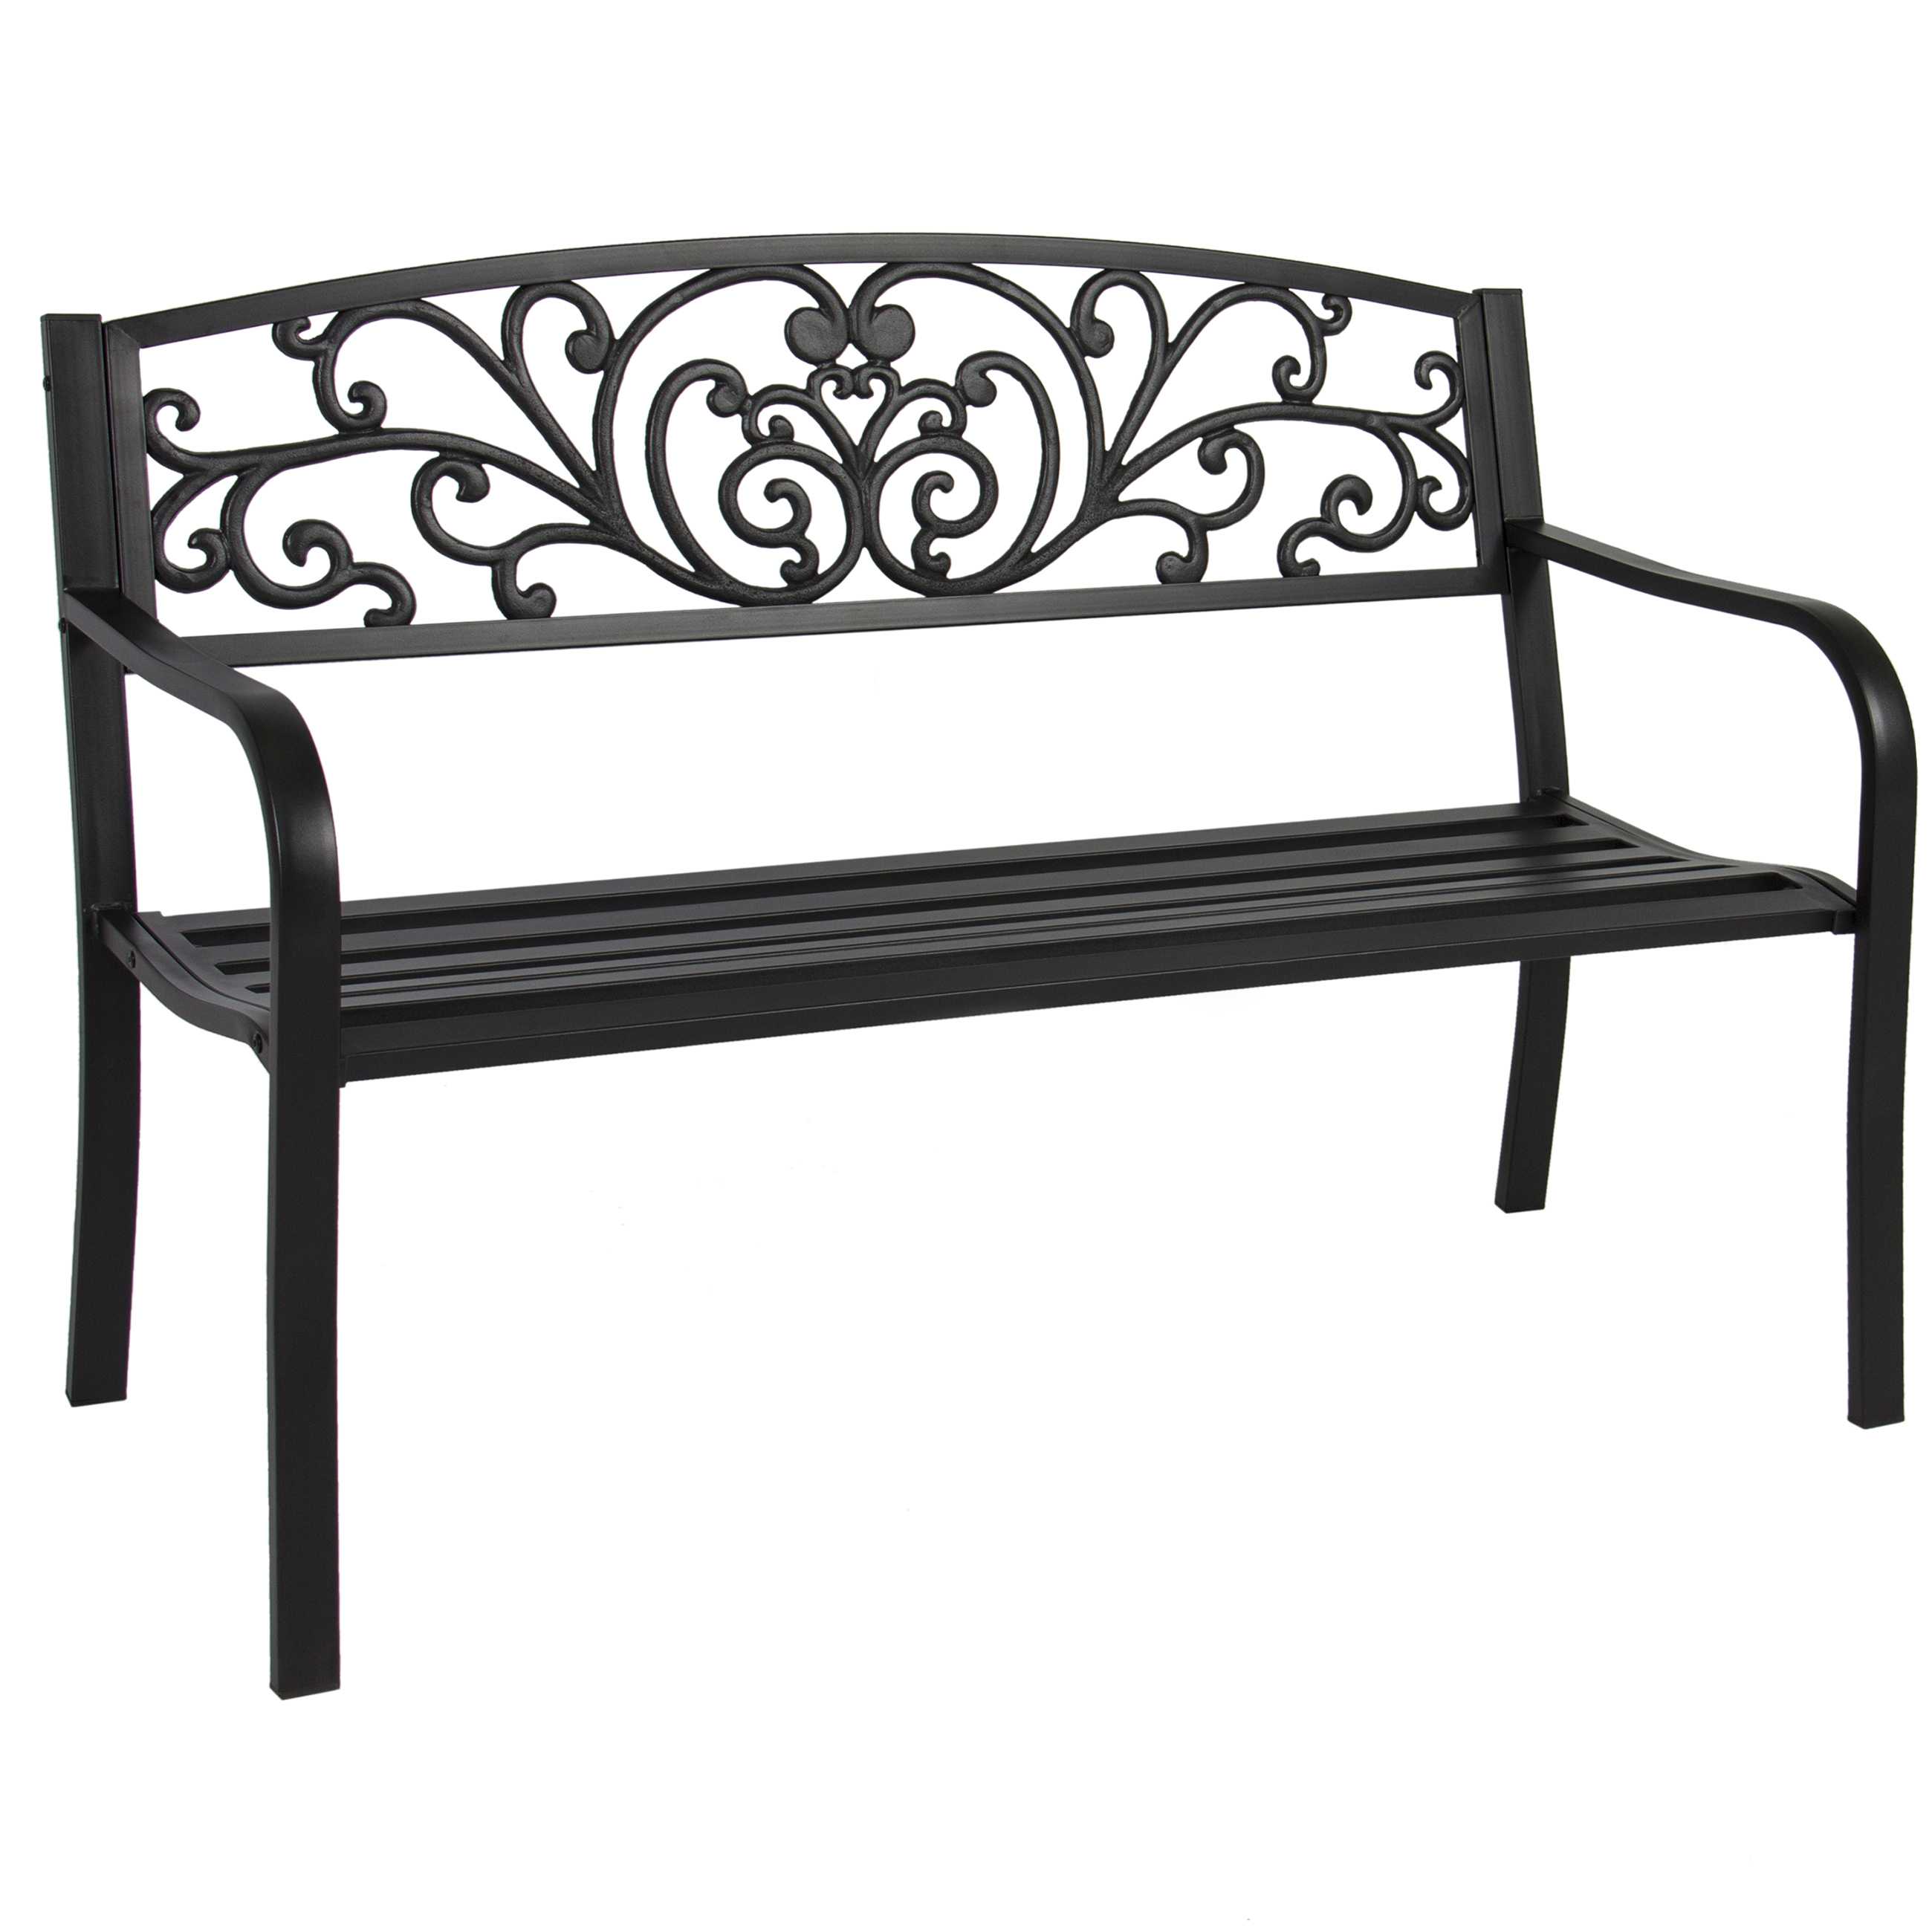 Lowes Patio Furnitures